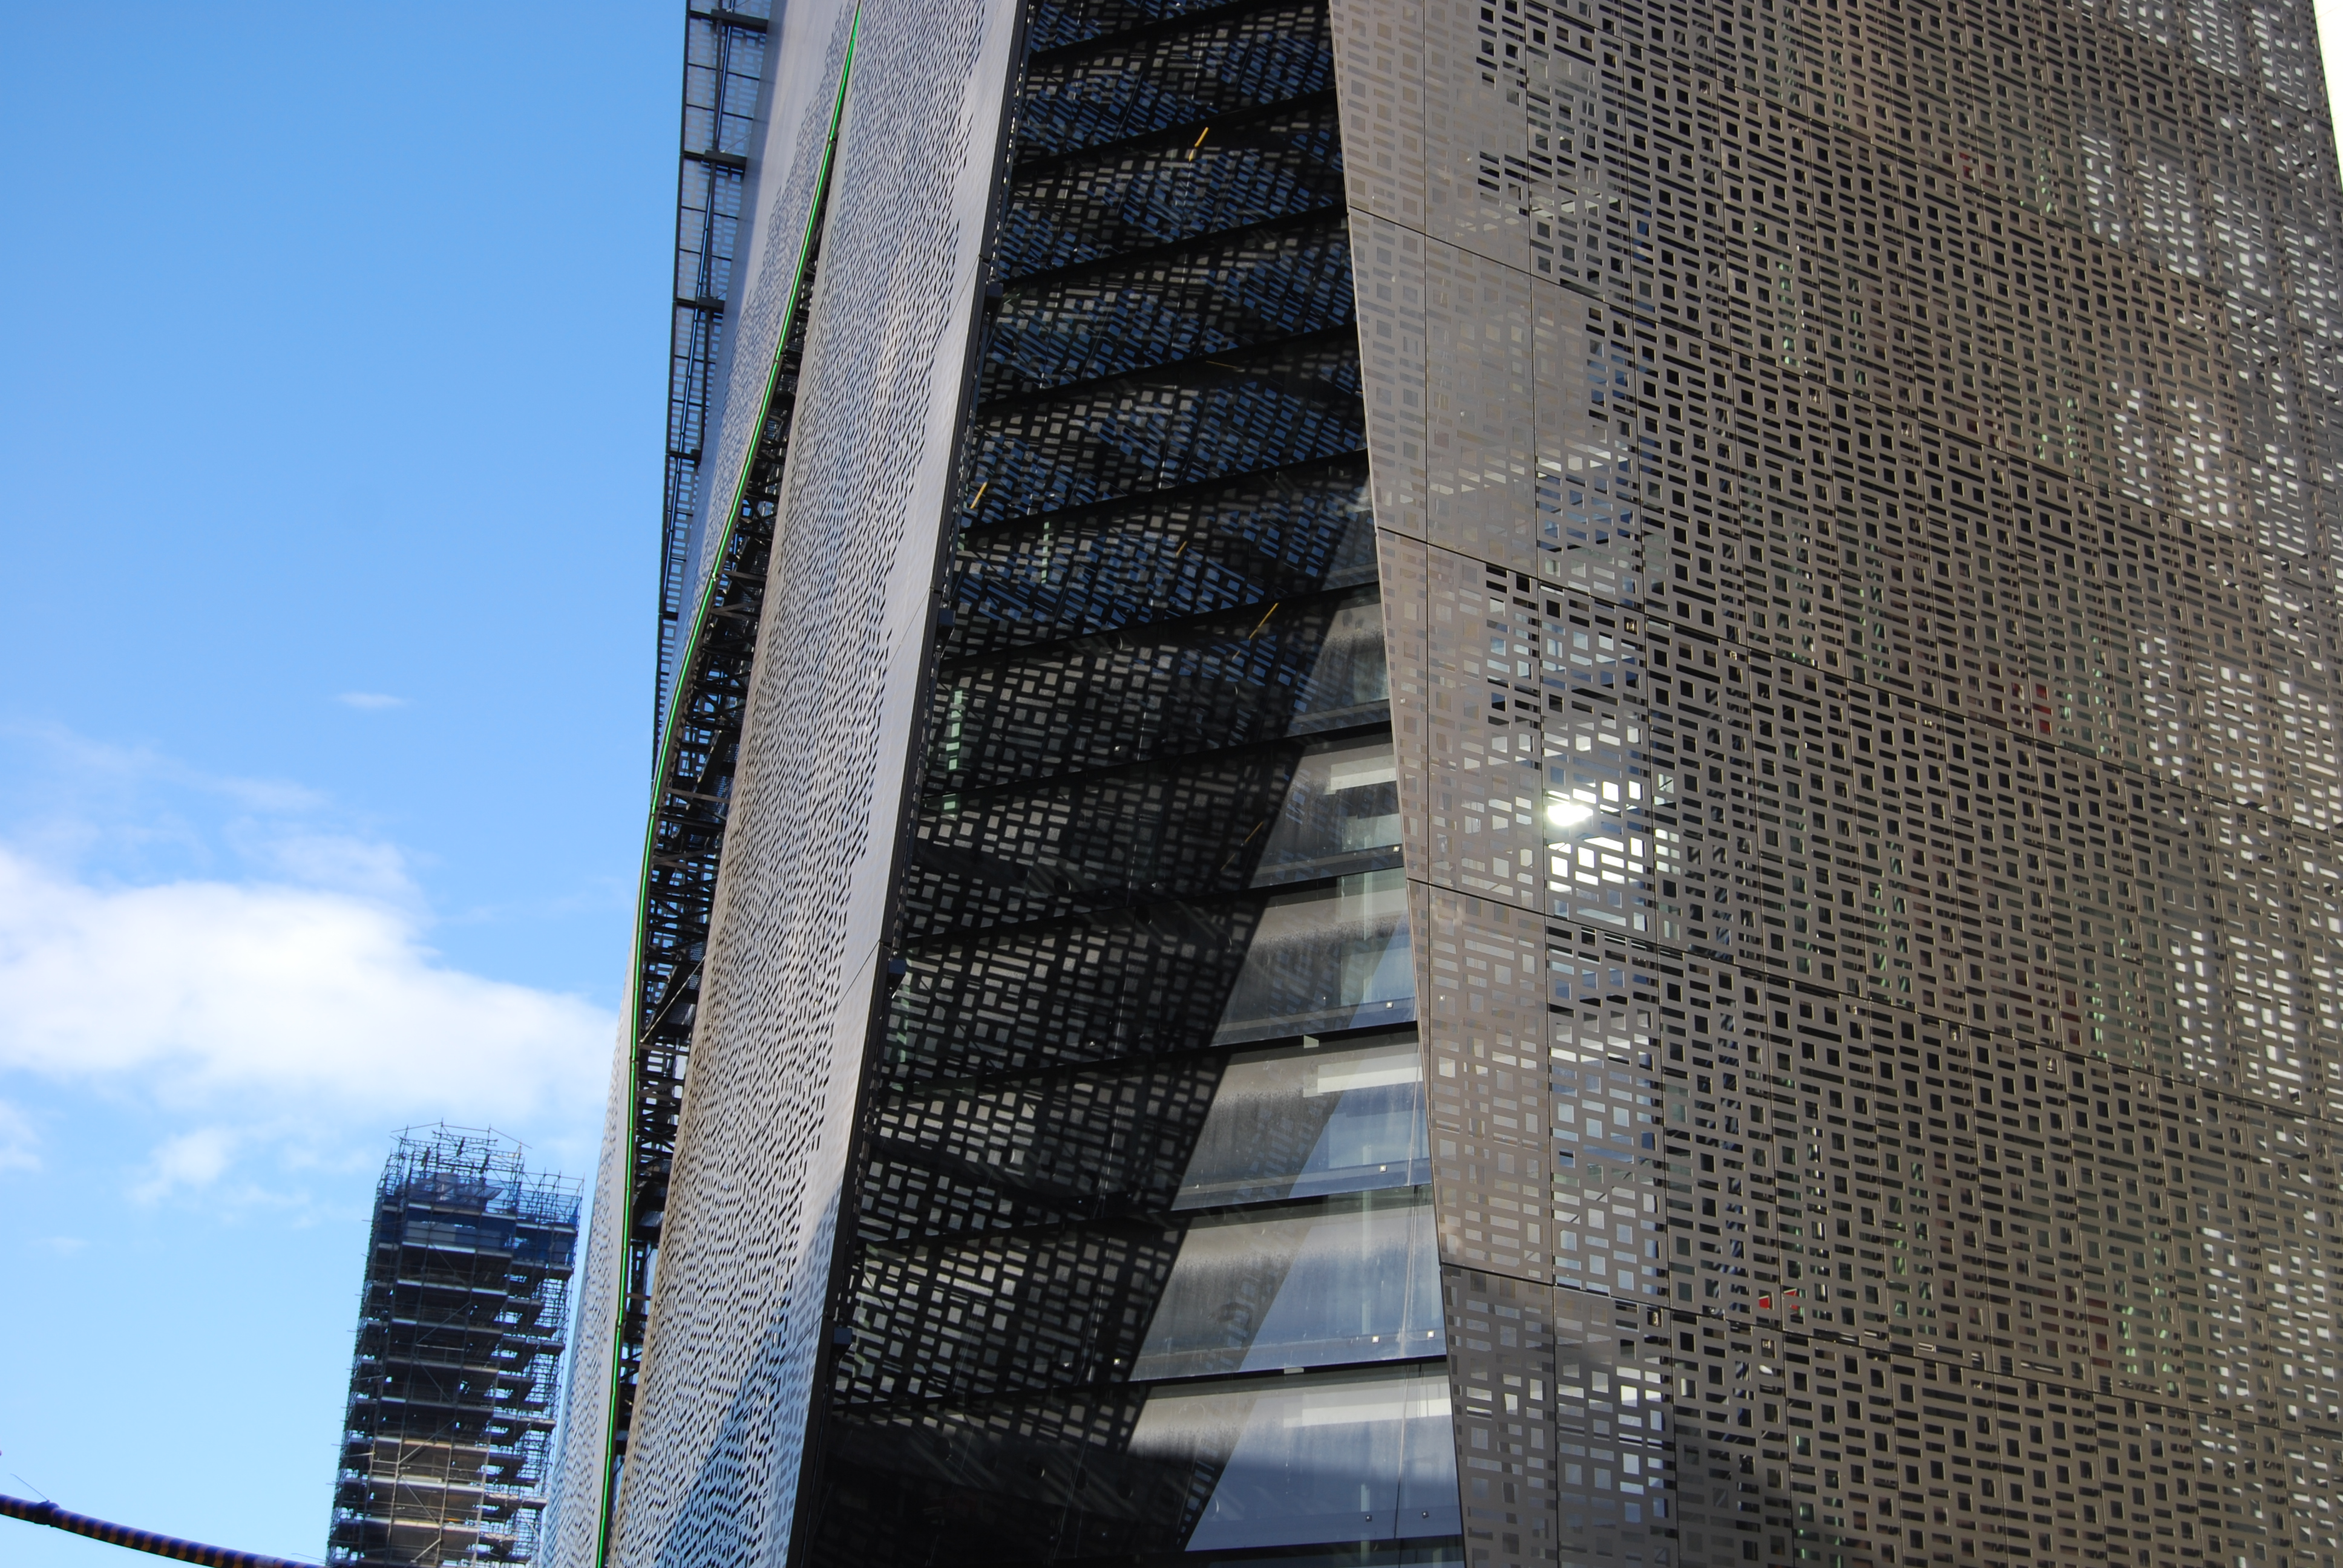 Binary screen, Faculty of Engineering and IT Building